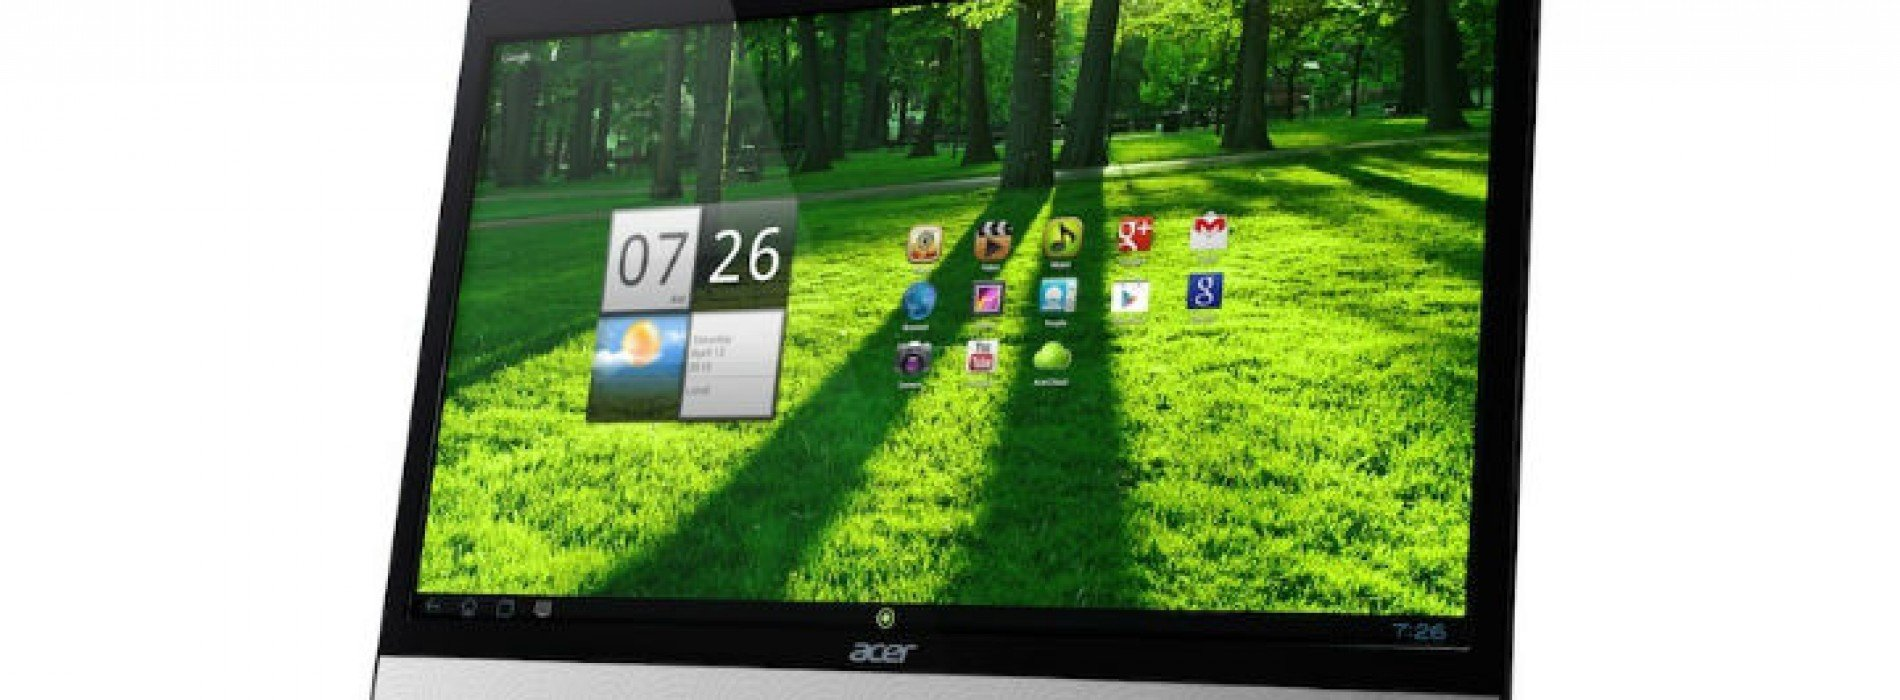 "21.5-inch Acer DA220HQL ""all-in-one"" announced with TI processor"